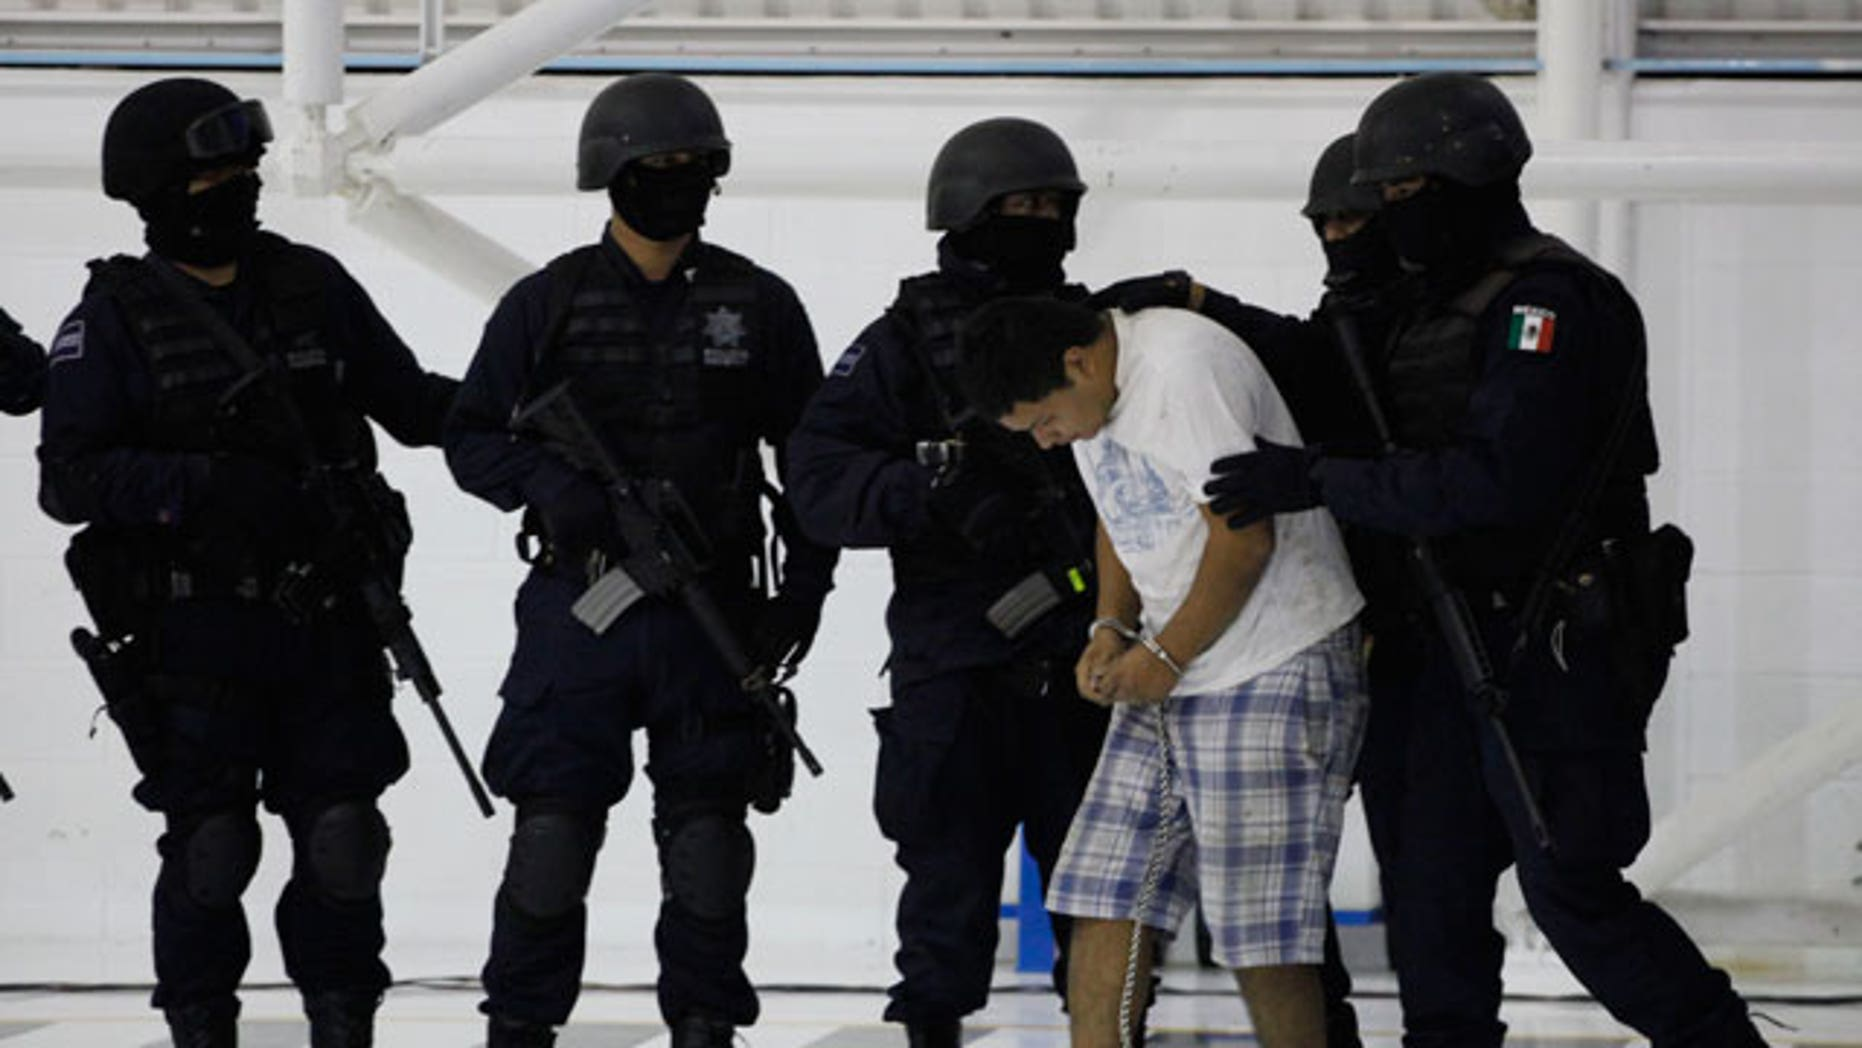 Federal police present an alleged drug cartel member to the press in Mexico City, Friday Aug. 13, 2010. Five alleged members of La Linea drug cartel, accused of participating in the killings of two federal police officers, were arrested Thursday in the border town of Ciudad Juarez, according to the police.